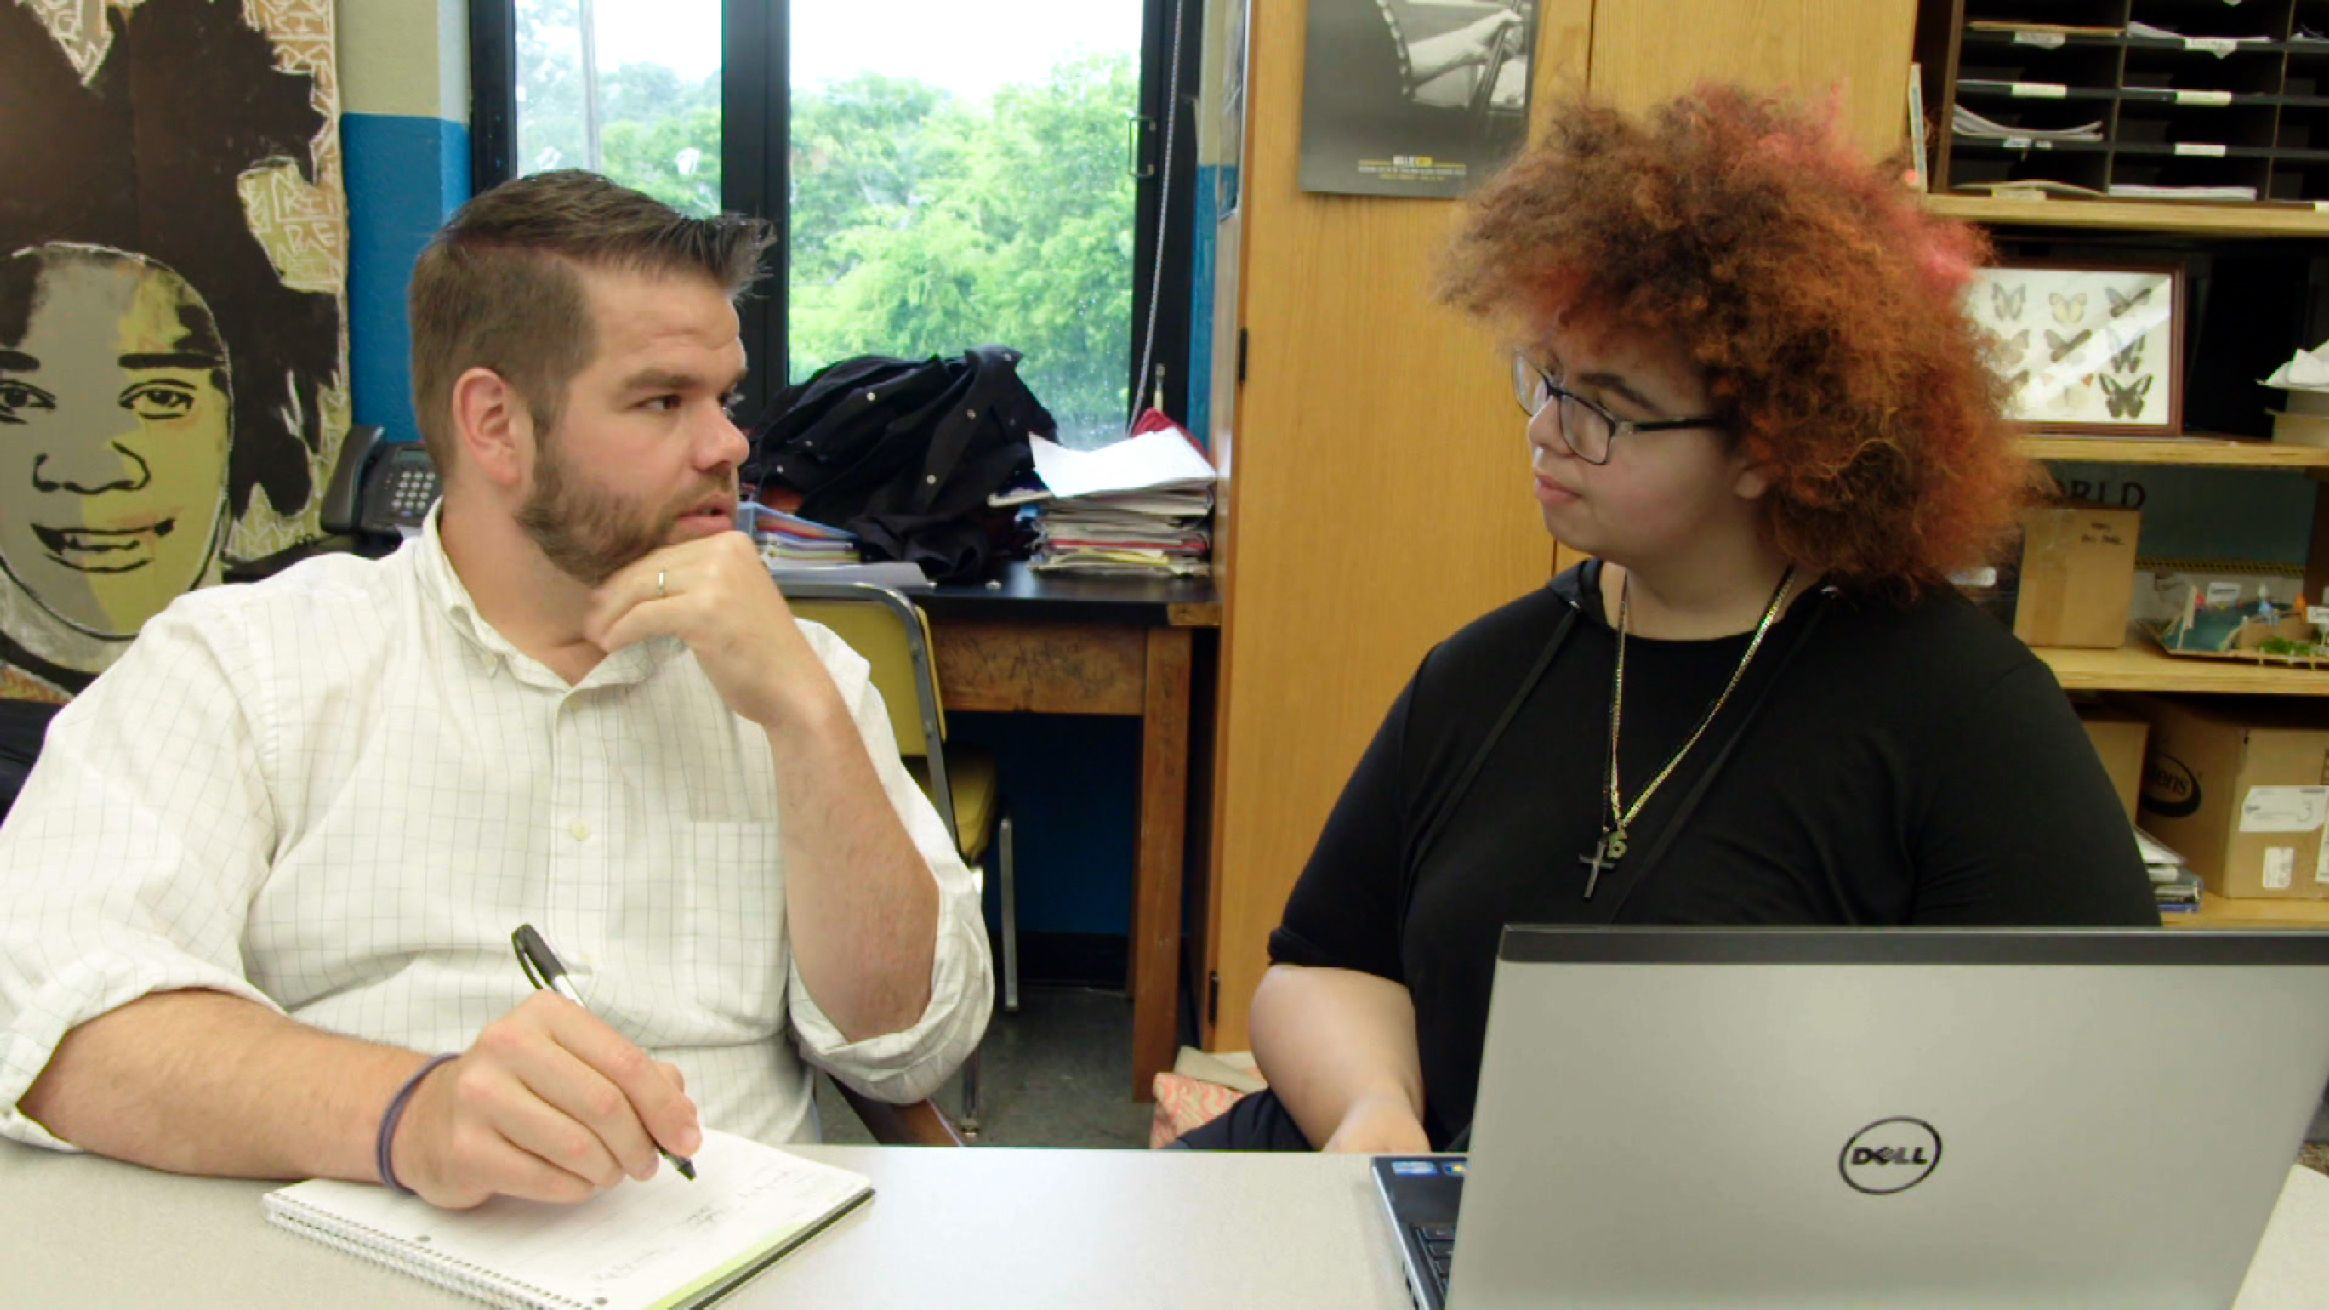 Advisor is working with a student